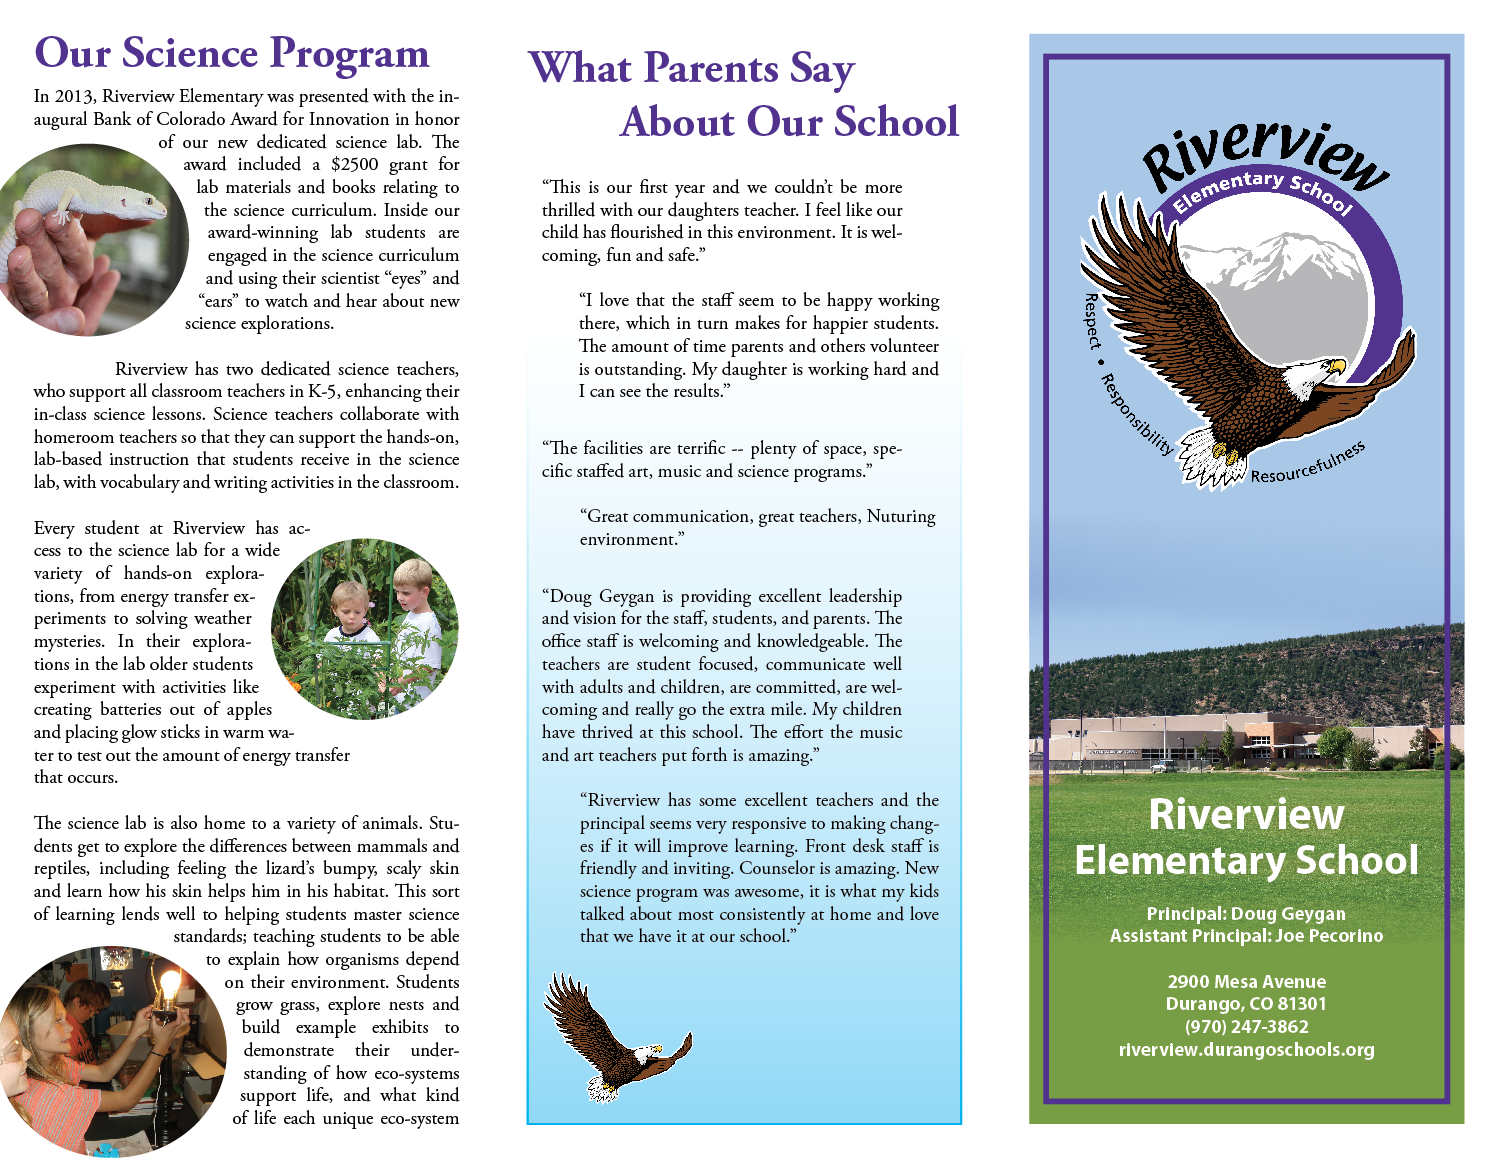 Screenshot of the outside of the Riverview Elementary brochure.